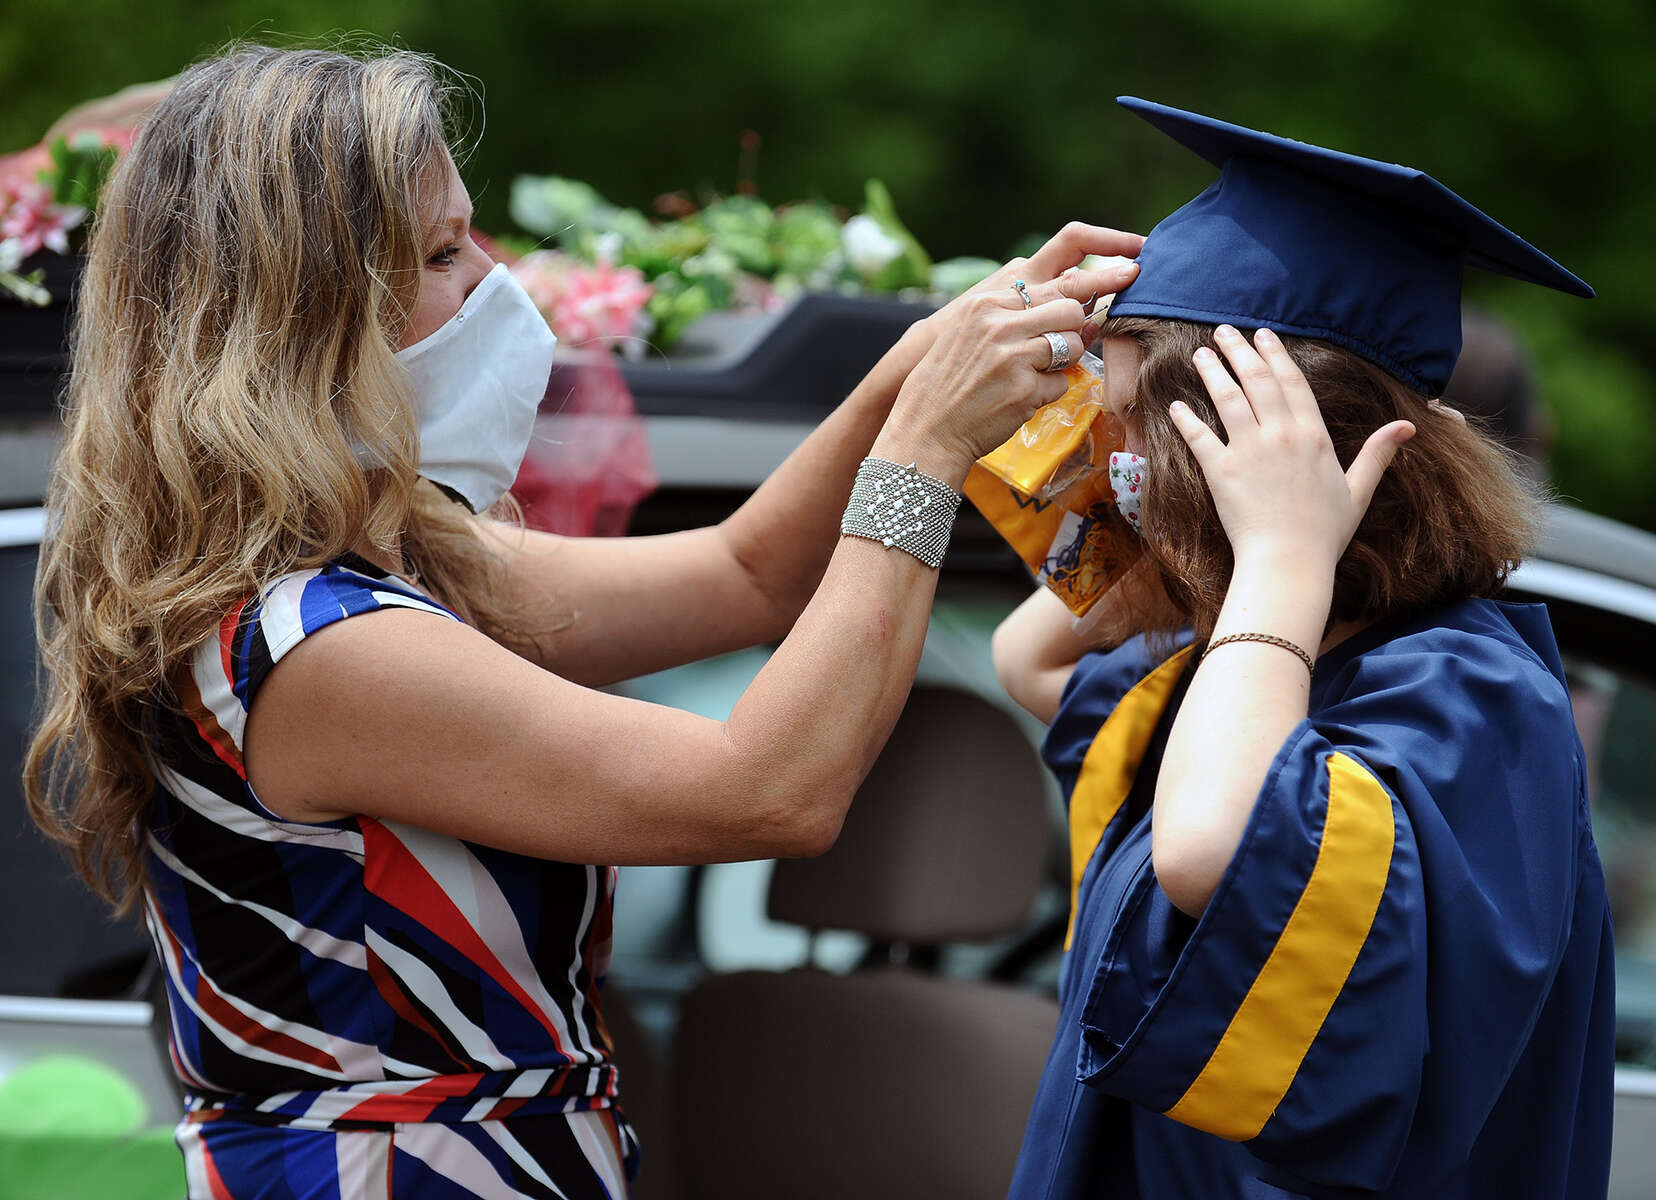 6/5/20-- LEXINGTON-- Mom Kate Sanjar, of Bolton, adjusts daughter graduate Roxanna's cap before Minuteman High School Commencement Ceremonies held Friday. [Daily News and Wicked Local Staff Photo/Art Illman]